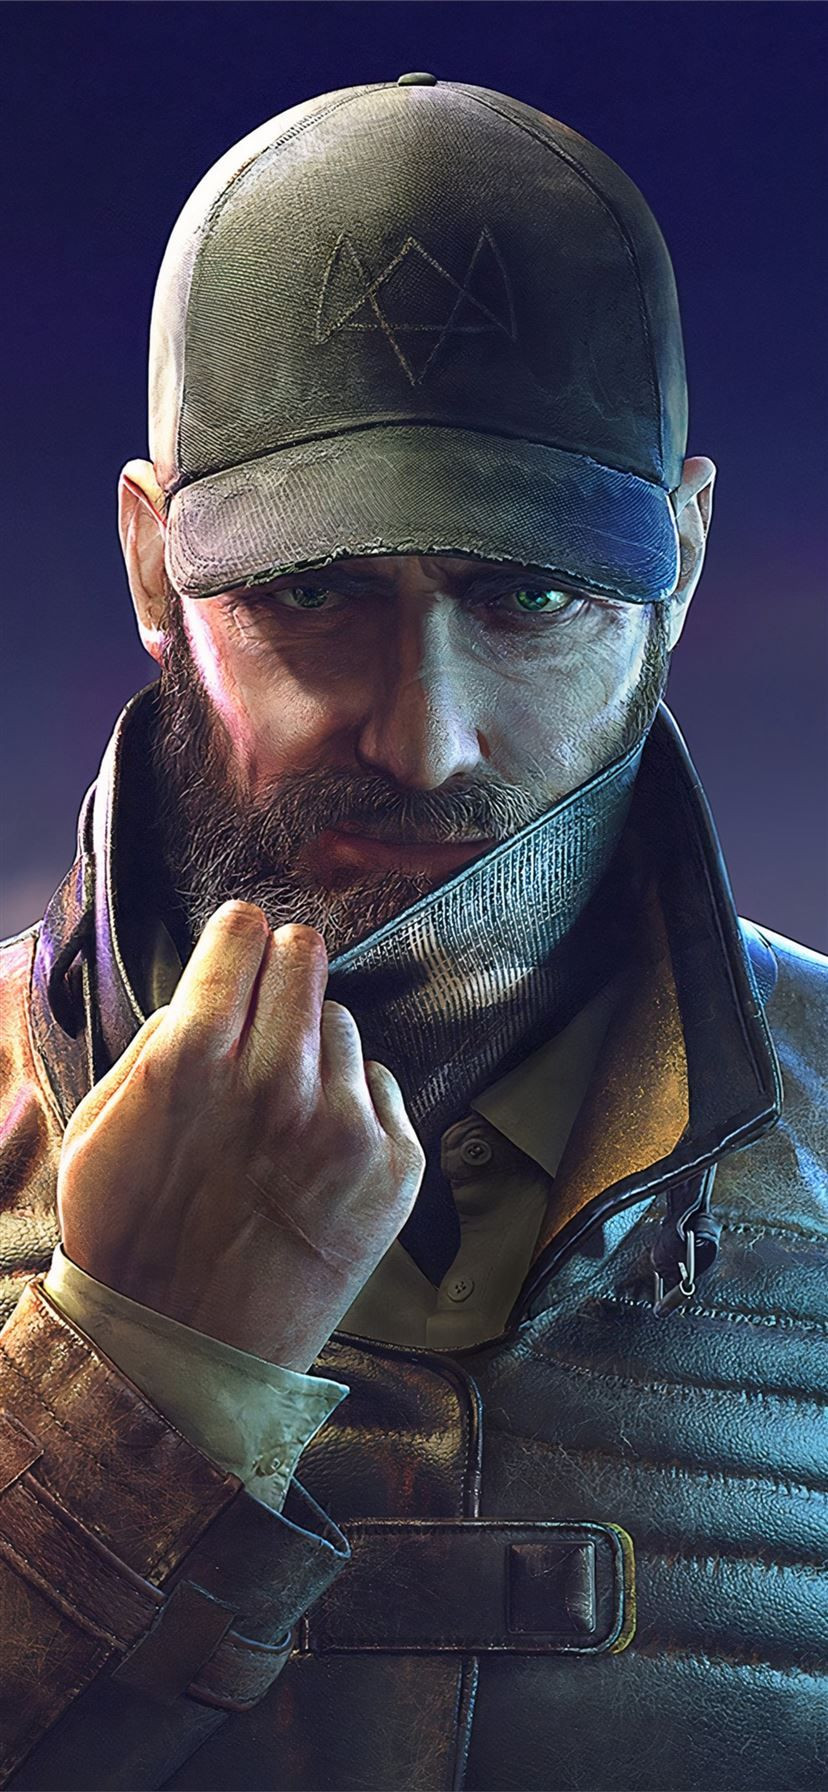 aiden pearce watch dogs legion 4k iPhone 11 Wallpapers